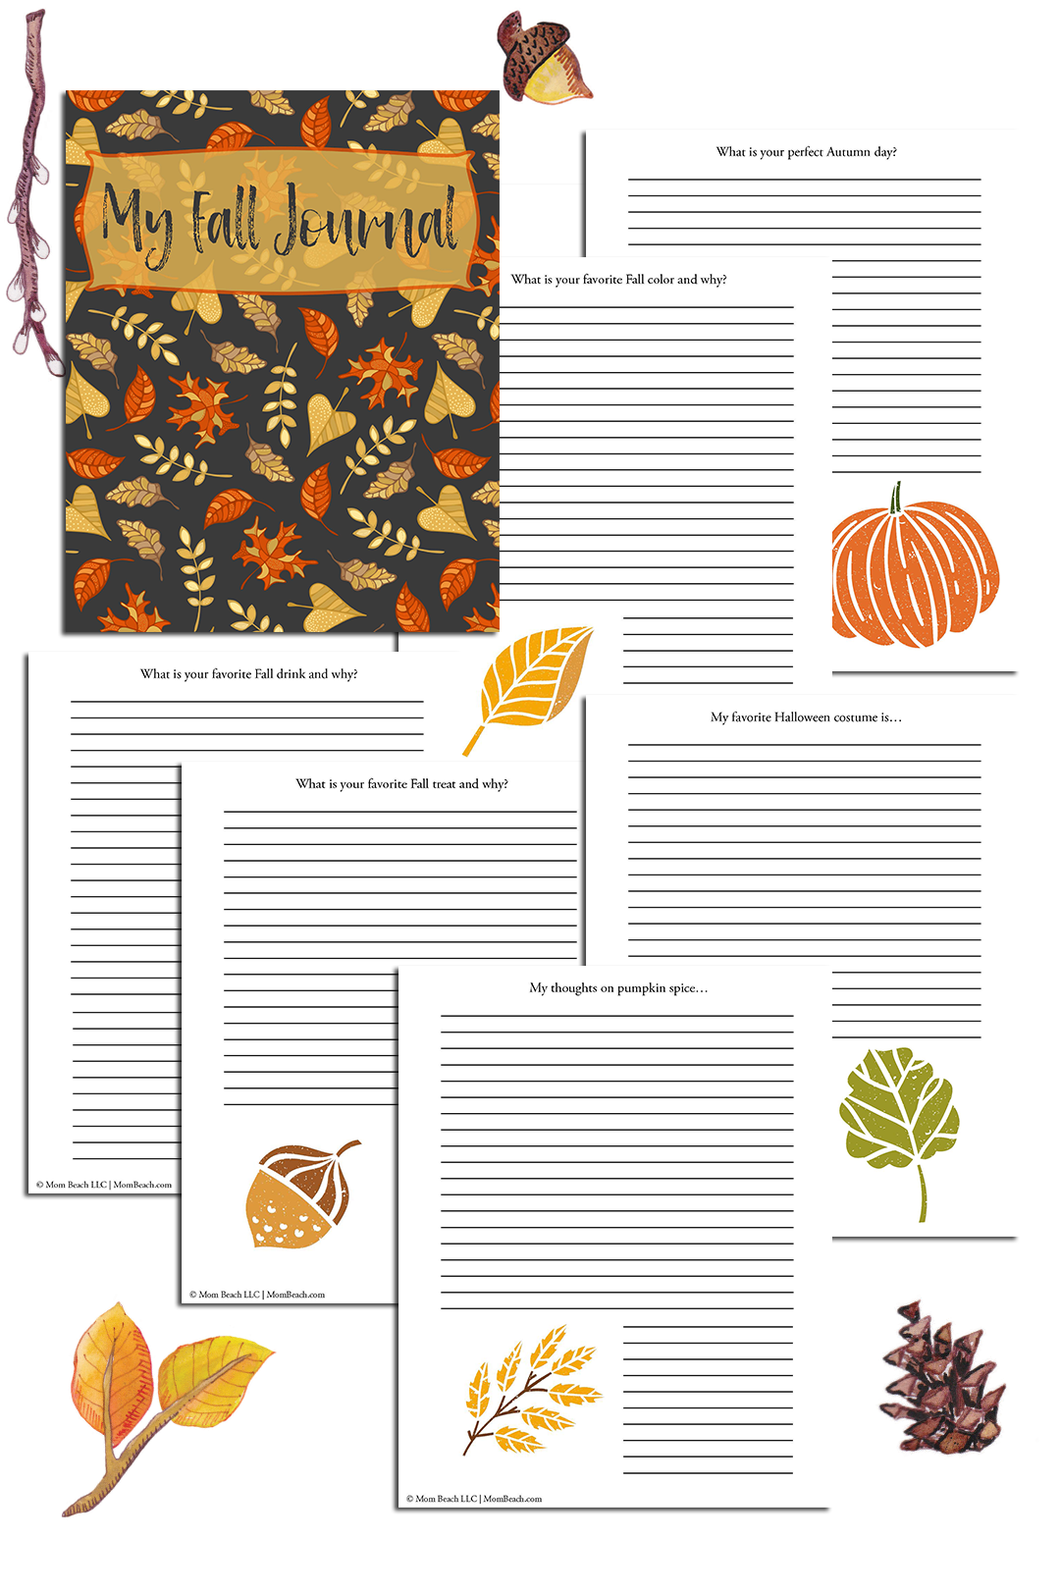 My Fall Journal (33 Pages)